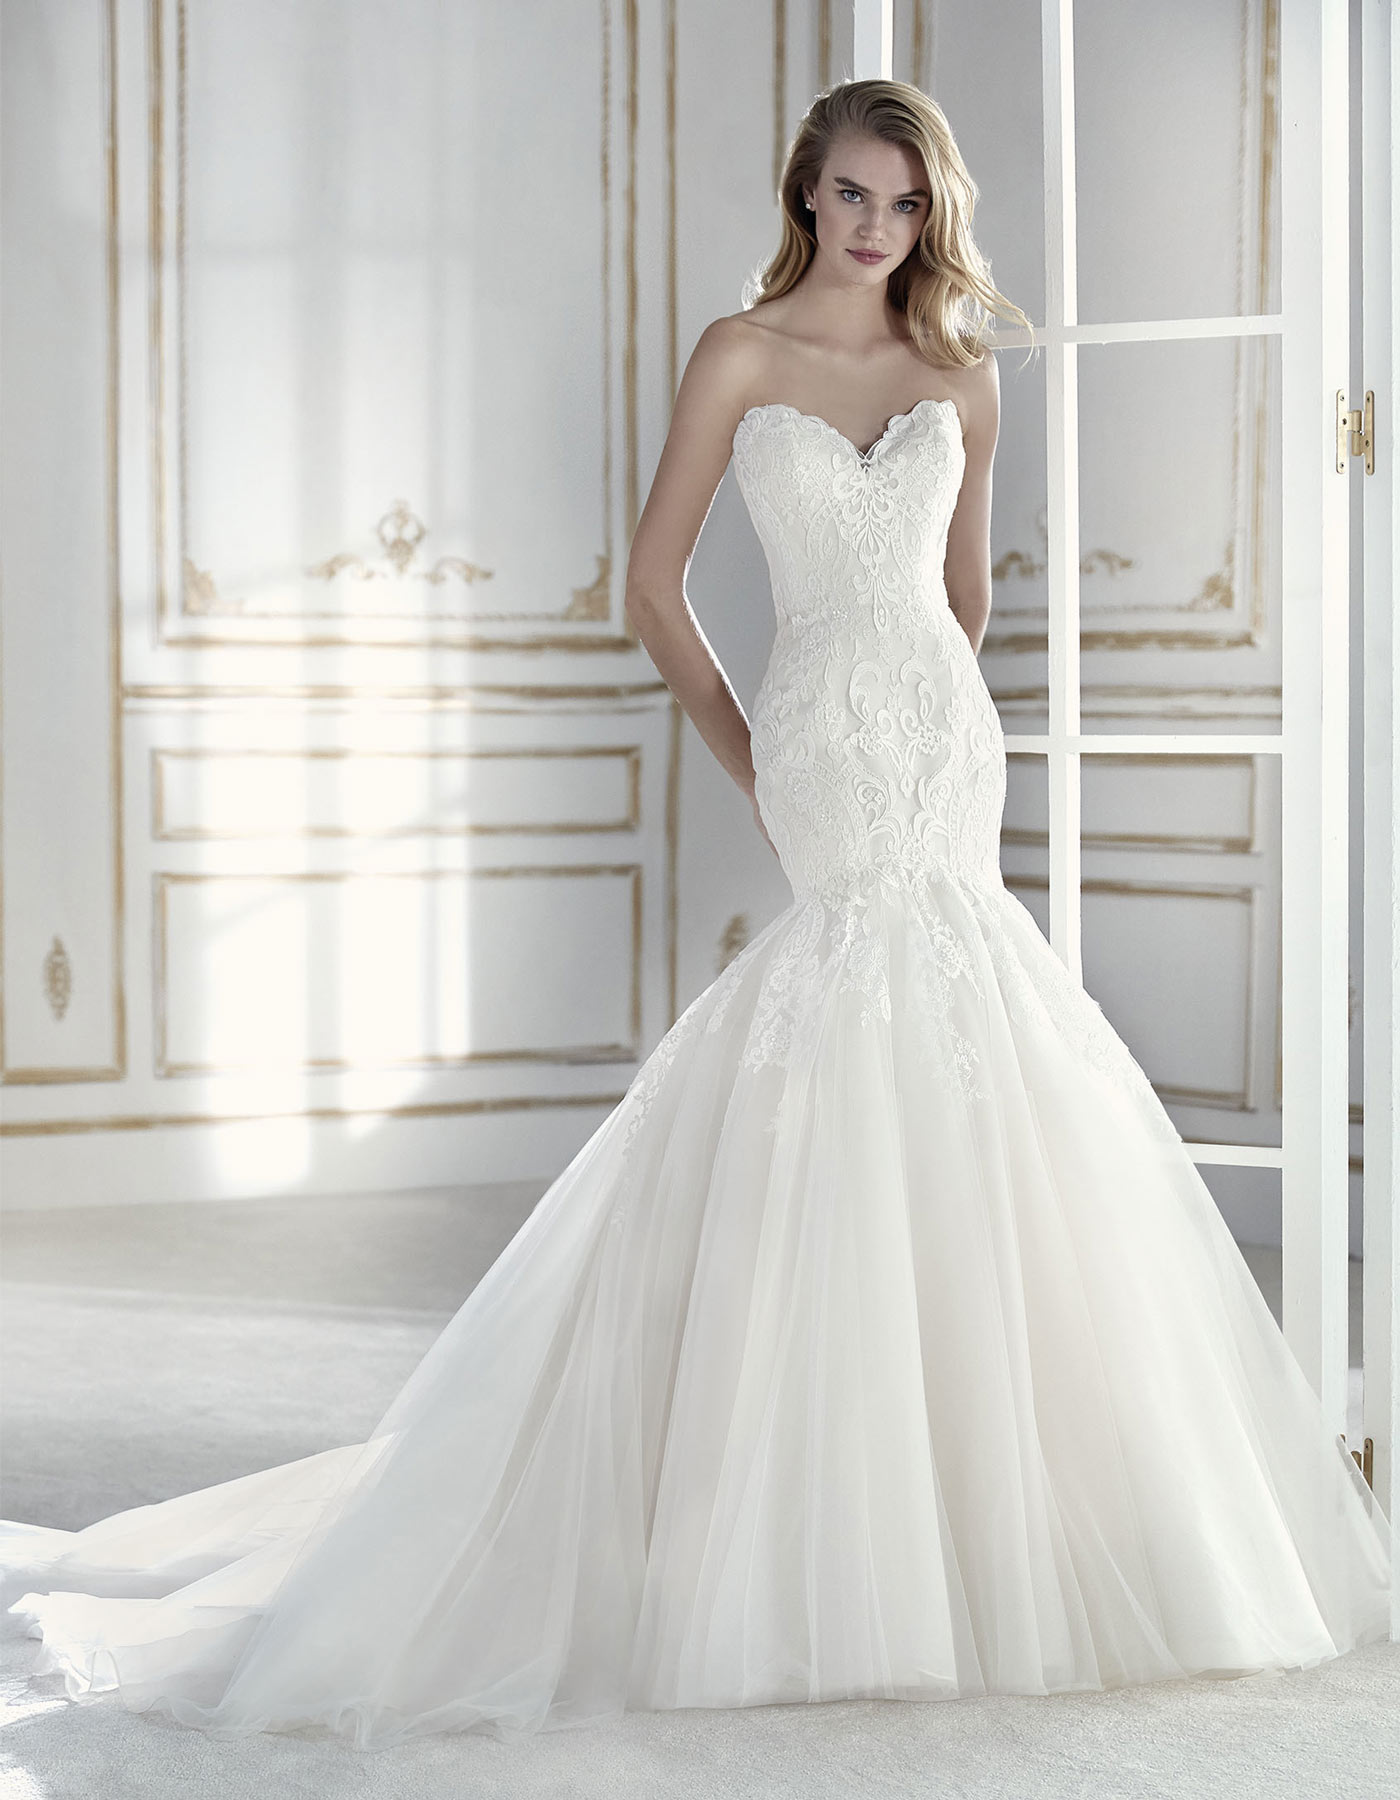 Fishtail lace wedding dress paulet by la sposa for La sposa wedding dresses